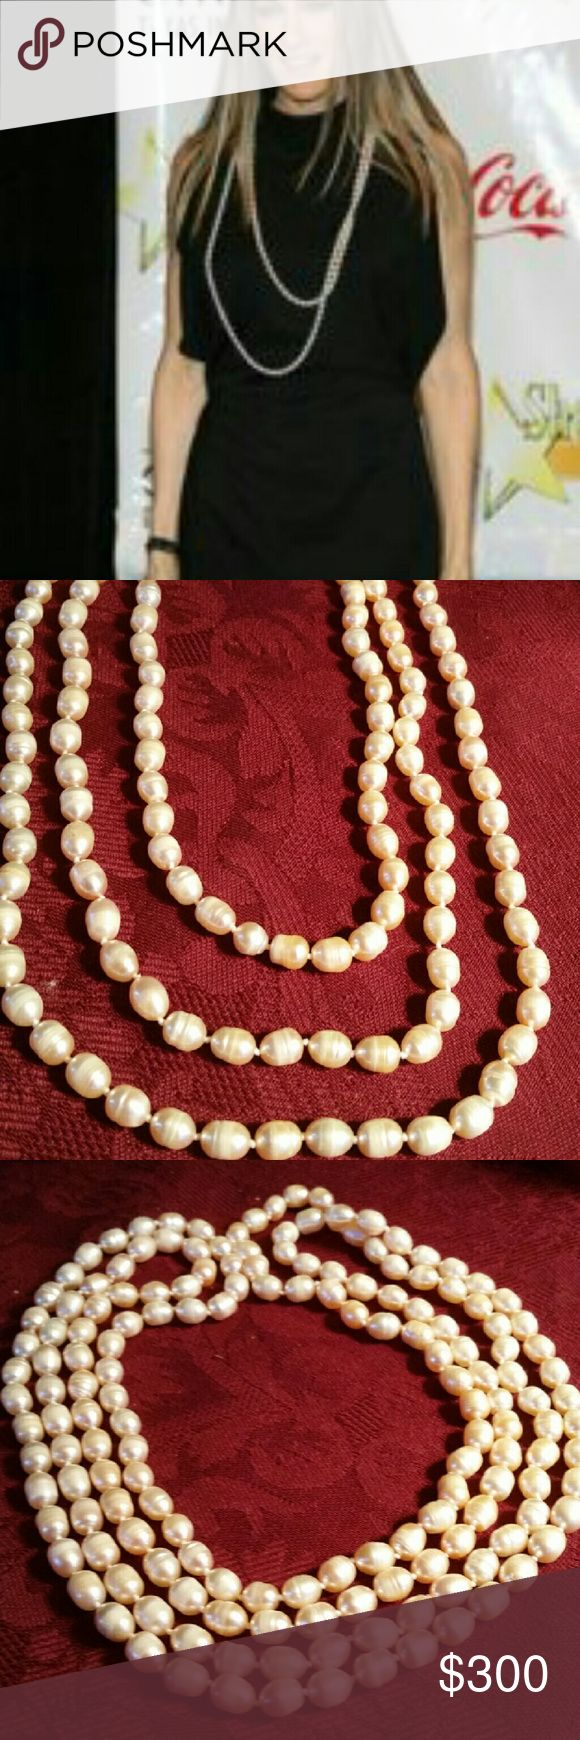 "Real authentic  costume made pink pearl necklace This is such a beautiful Long necklace which can be used long or double or triple layered also as a bracelet. In new condition flawless this are 100% real authentic pearls is 72""inches long. Jewelry Necklaces"